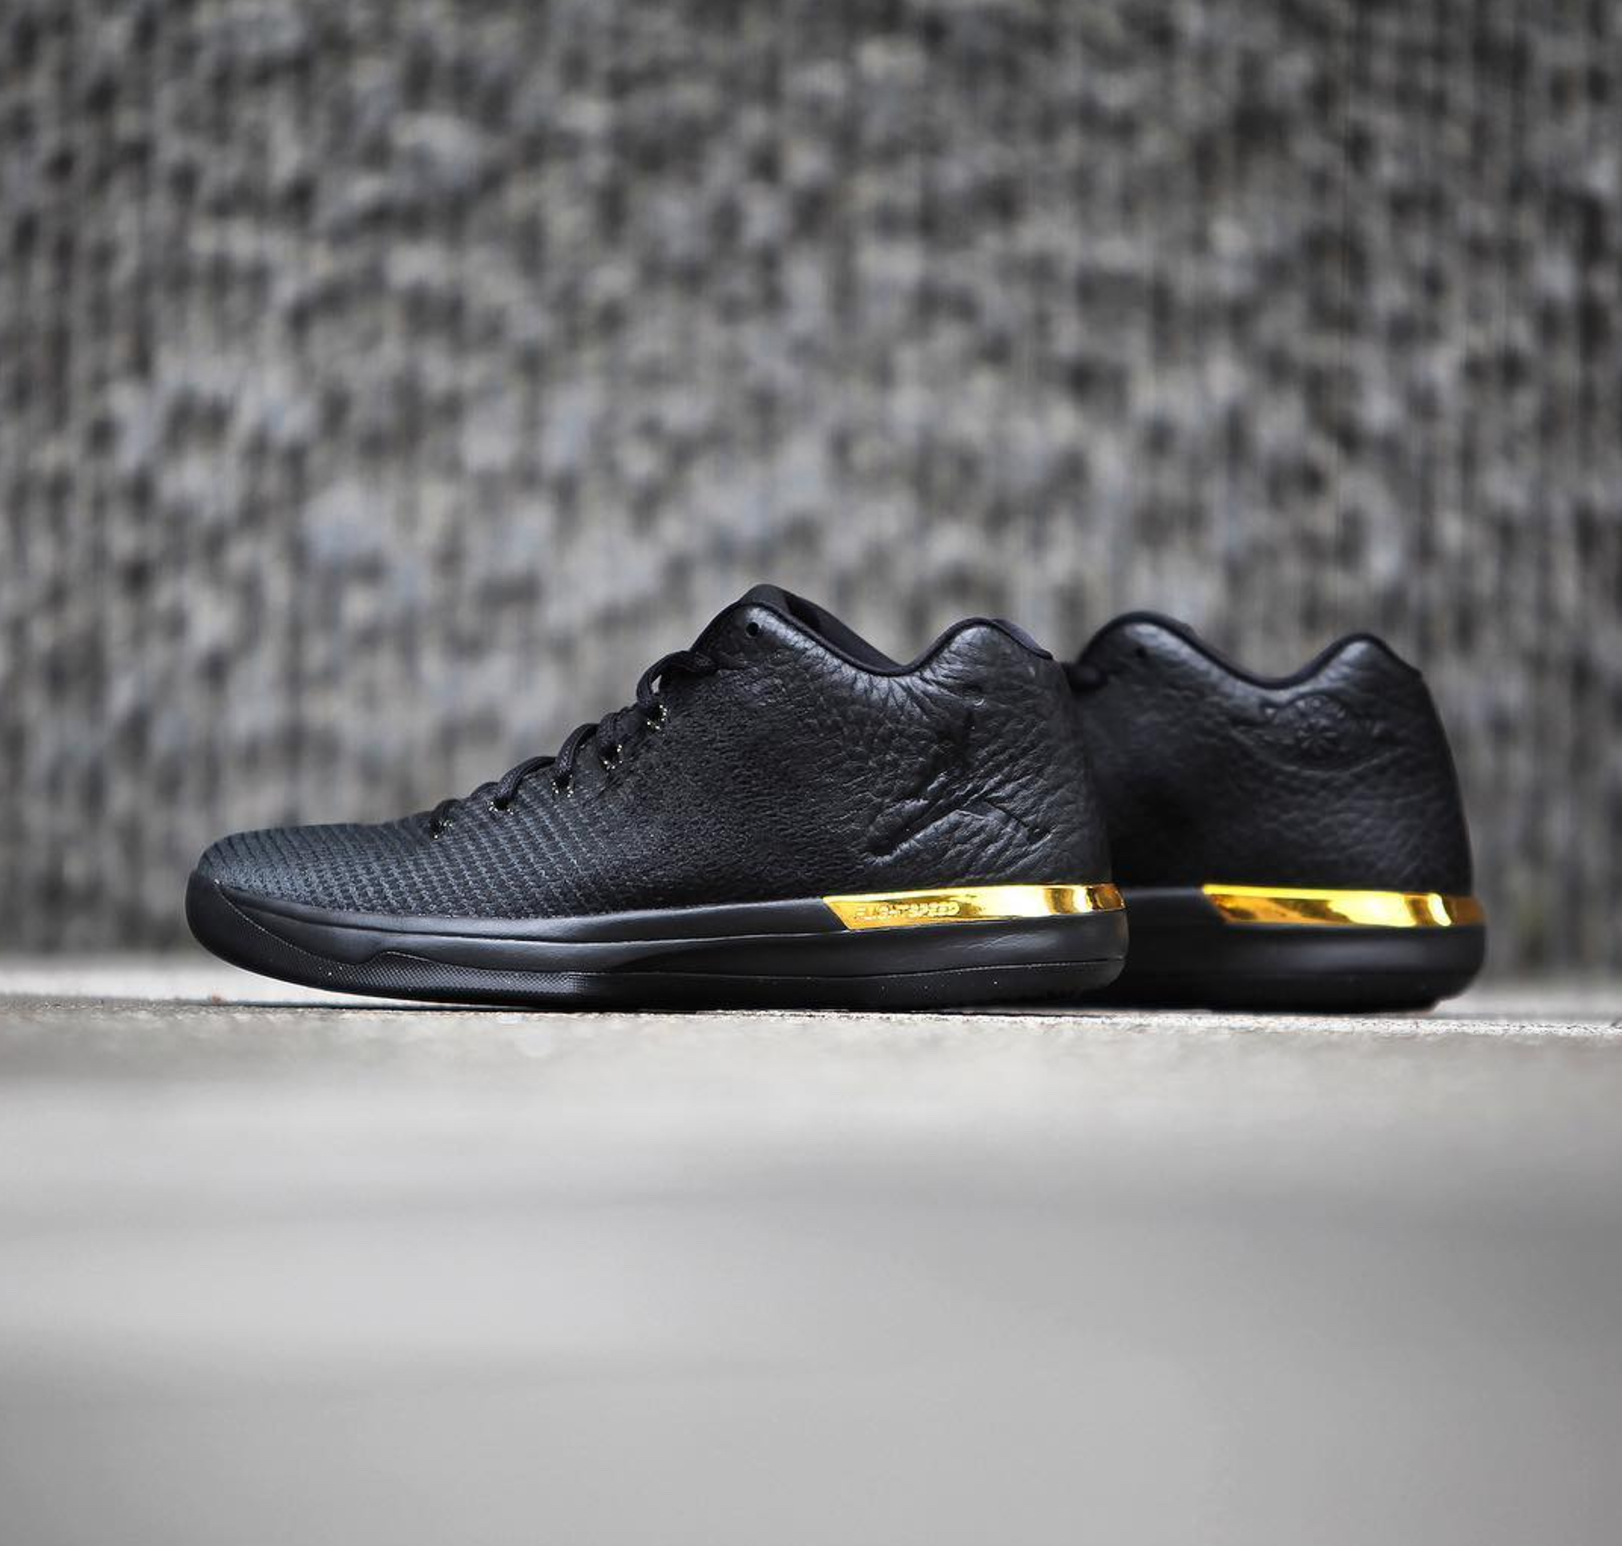 new arrival f8932 27417 Up Close and Personal with the Air Jordan XXXI Low 'Black ...